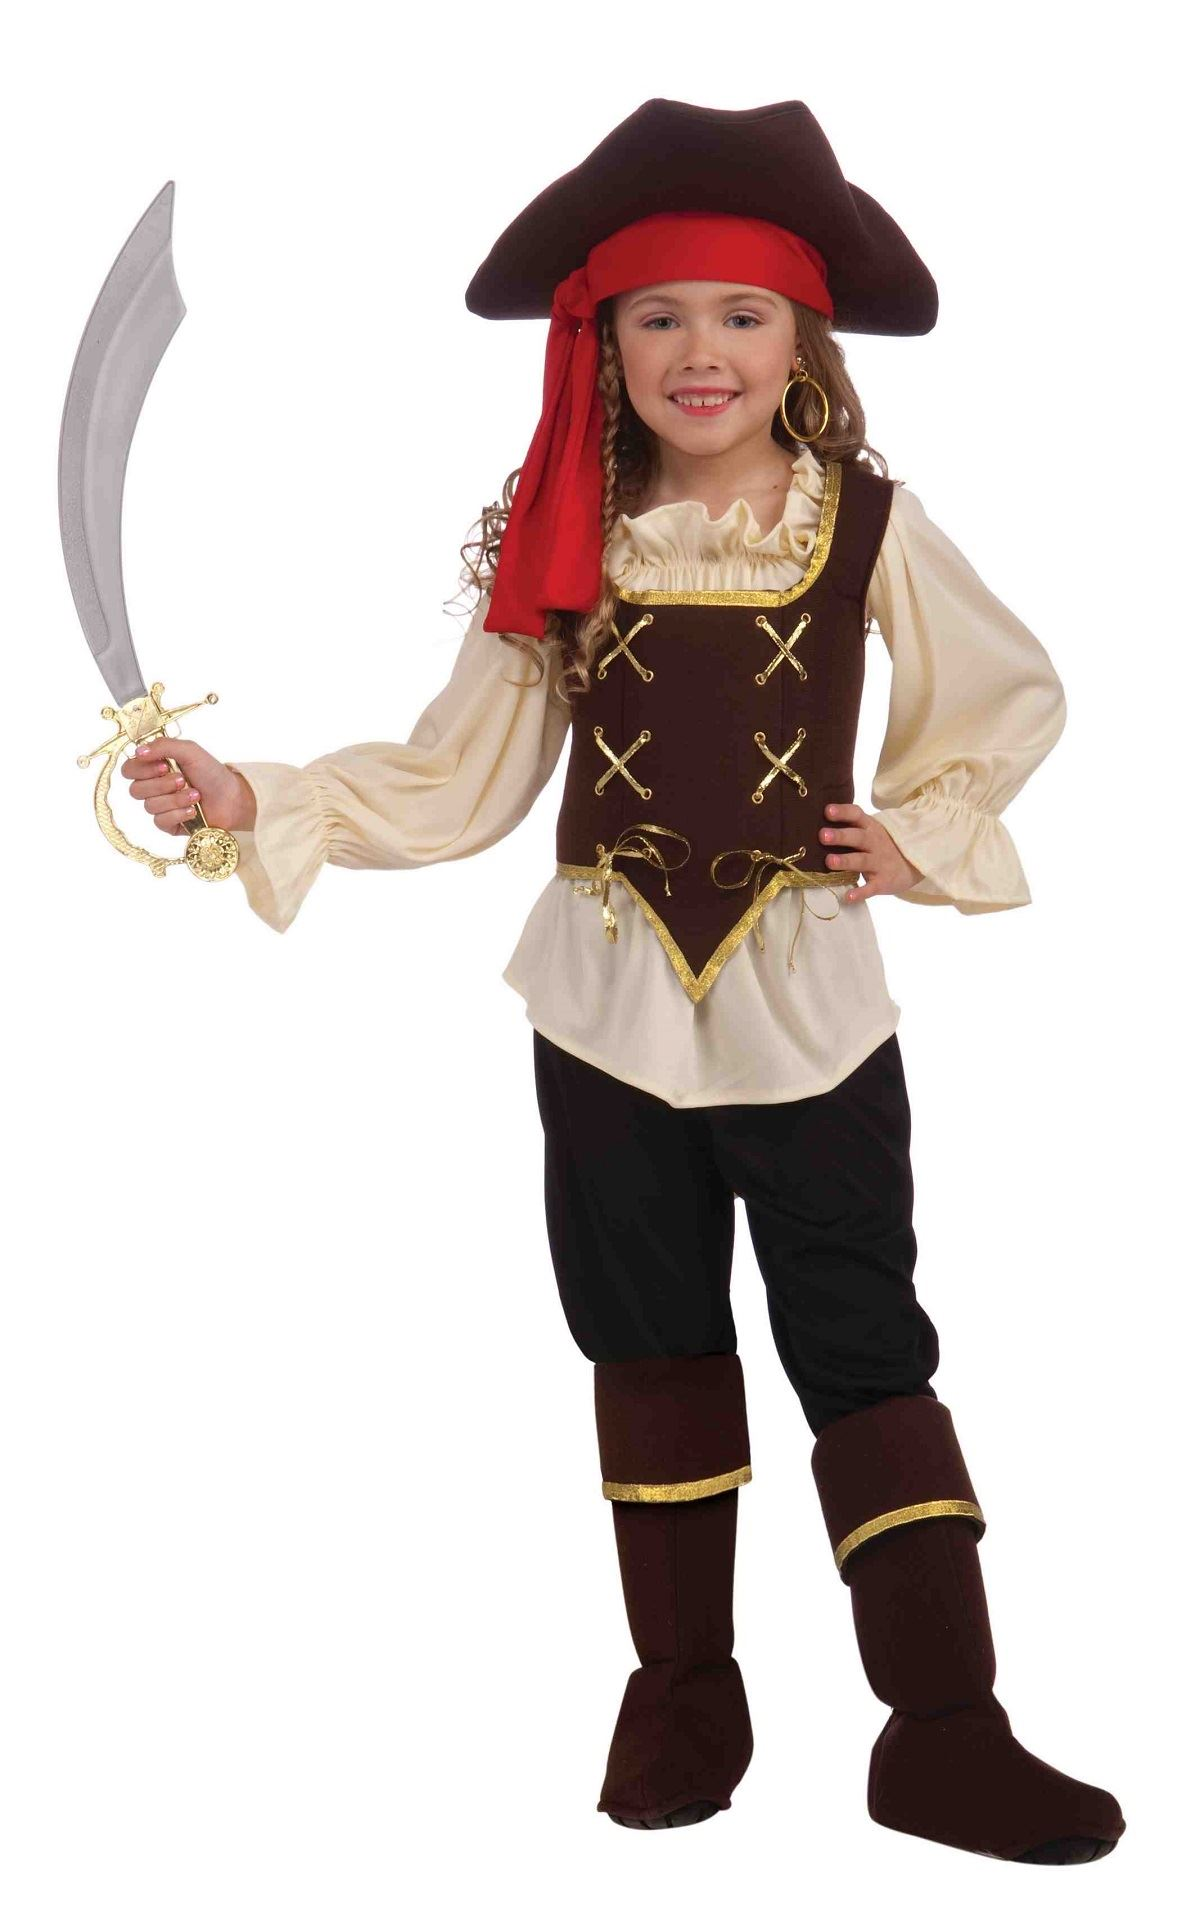 Buccaneer Girl Pirate Costume  sc 1 st  The Costume Land & Girls Pirate Costumes Halloween Costumes | Buy Girls Pirate Costumes ...